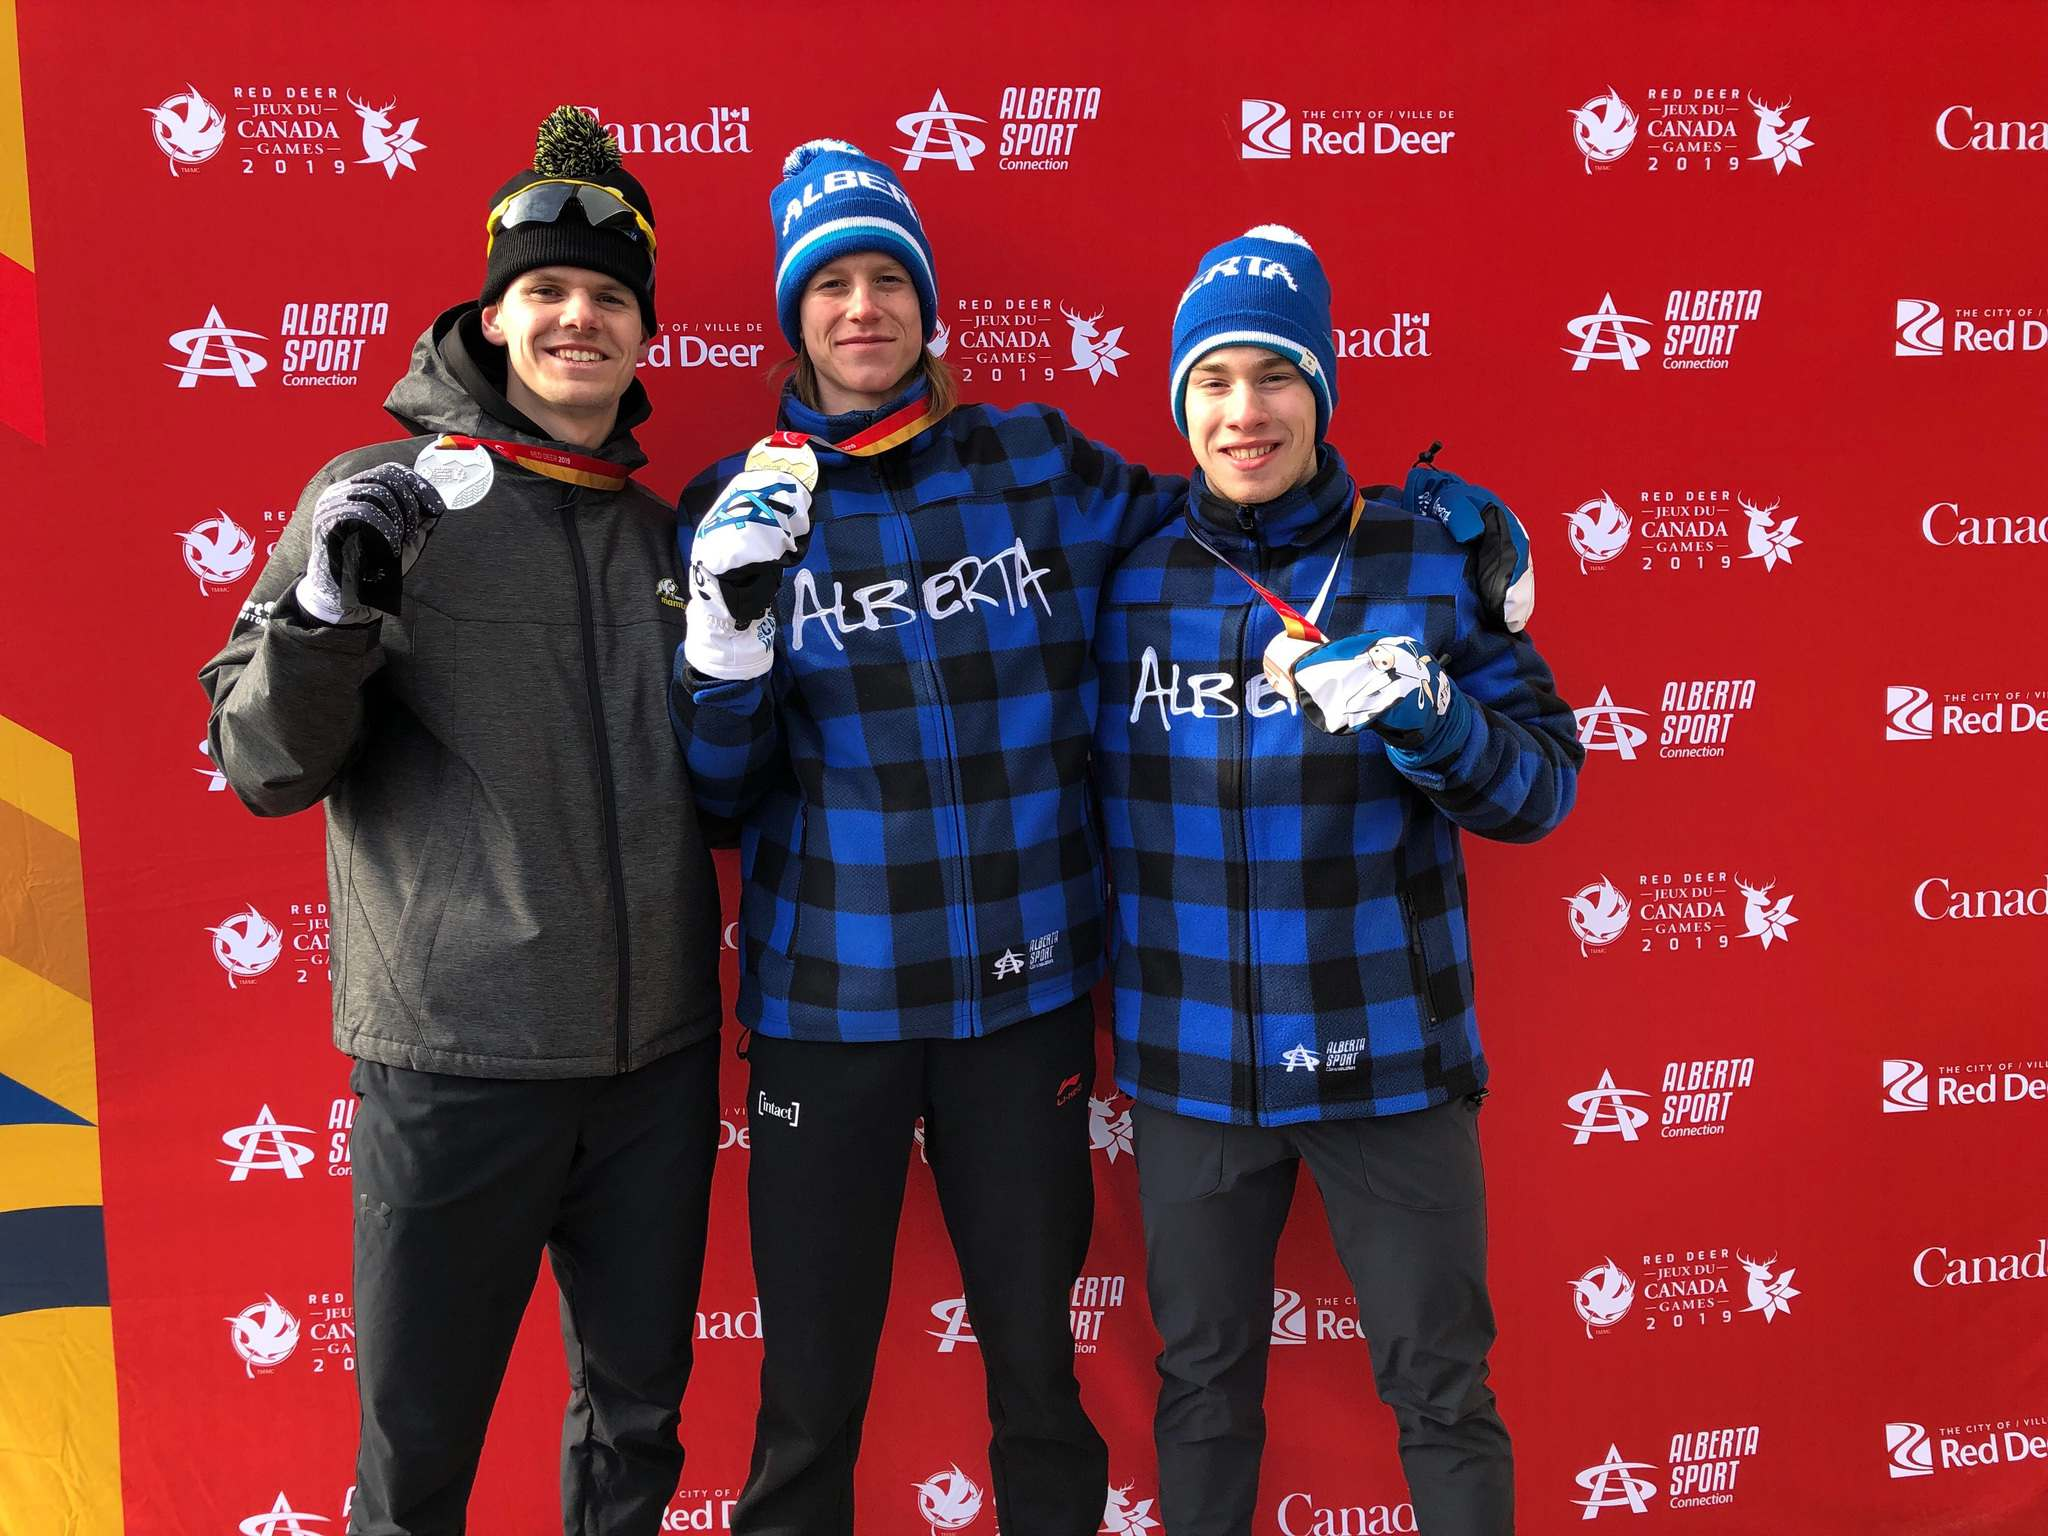 SUPPLIED</p><p>Winnipeg&#39;s Tyson Langelaar, left, shows off his third medal, this time a silver, at the 2019 Canada Games in Speed Skating - Long Track - 5000m Male, with a final race time of 6:56.36.</p>